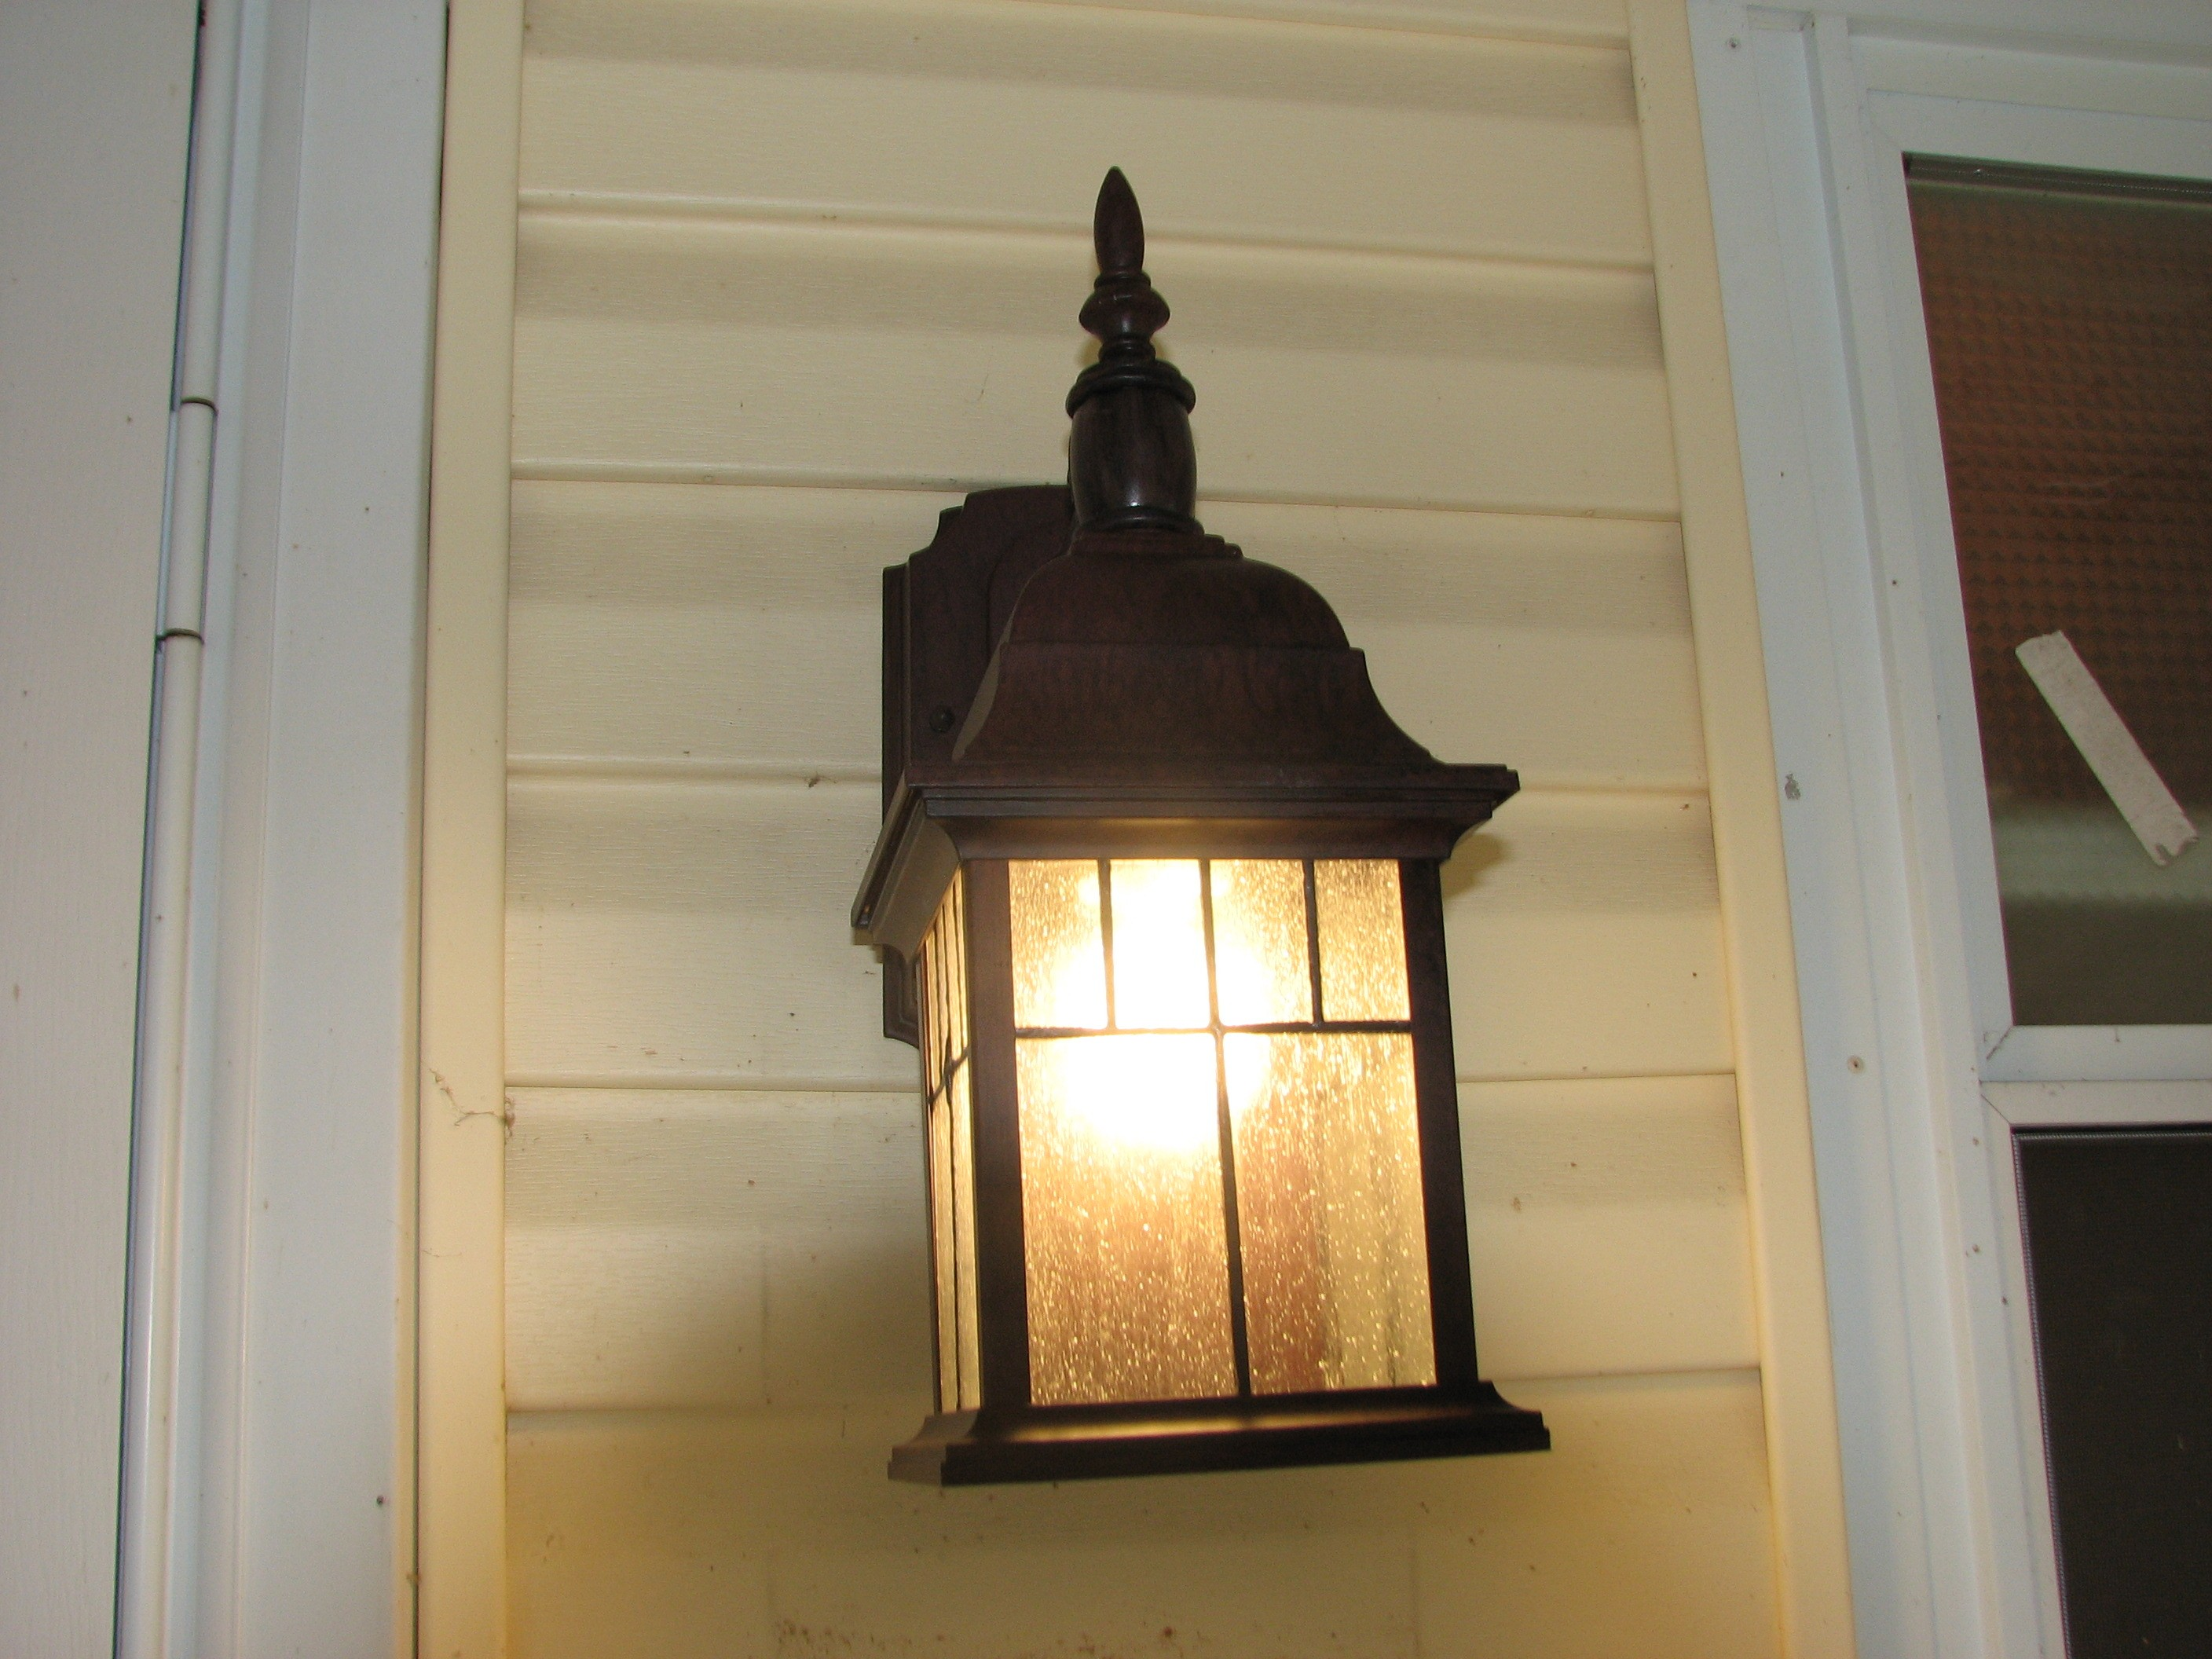 Replacing Exterior Wall Lights : Outdoor Porch Lights Front Porch Lights Outdoor Wall Lighting Front MR11 LED Bulb 12 LEDs LED ...